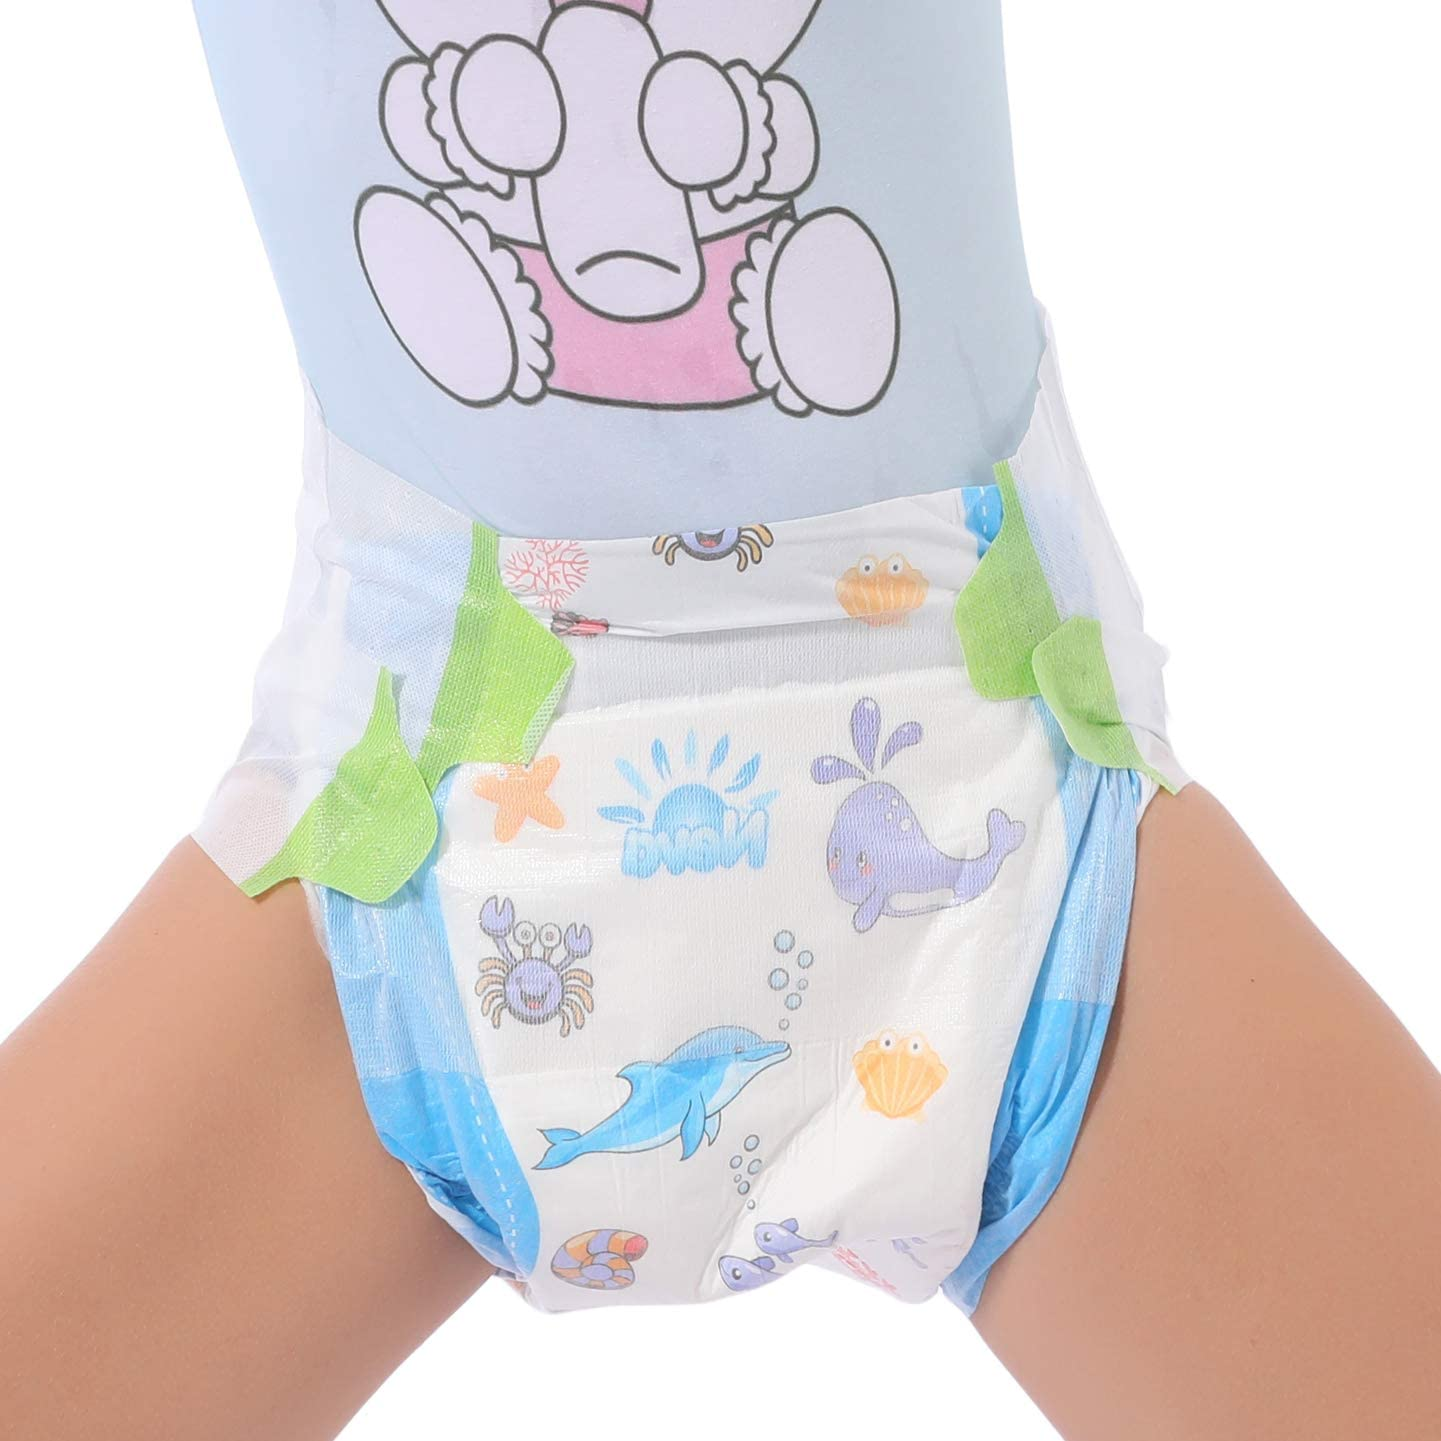 TEN@NIGHT Adult Baby Diaper Protective Briefs One time Diaper ABDL Incontinence Underwear DDLG 8 Pieces